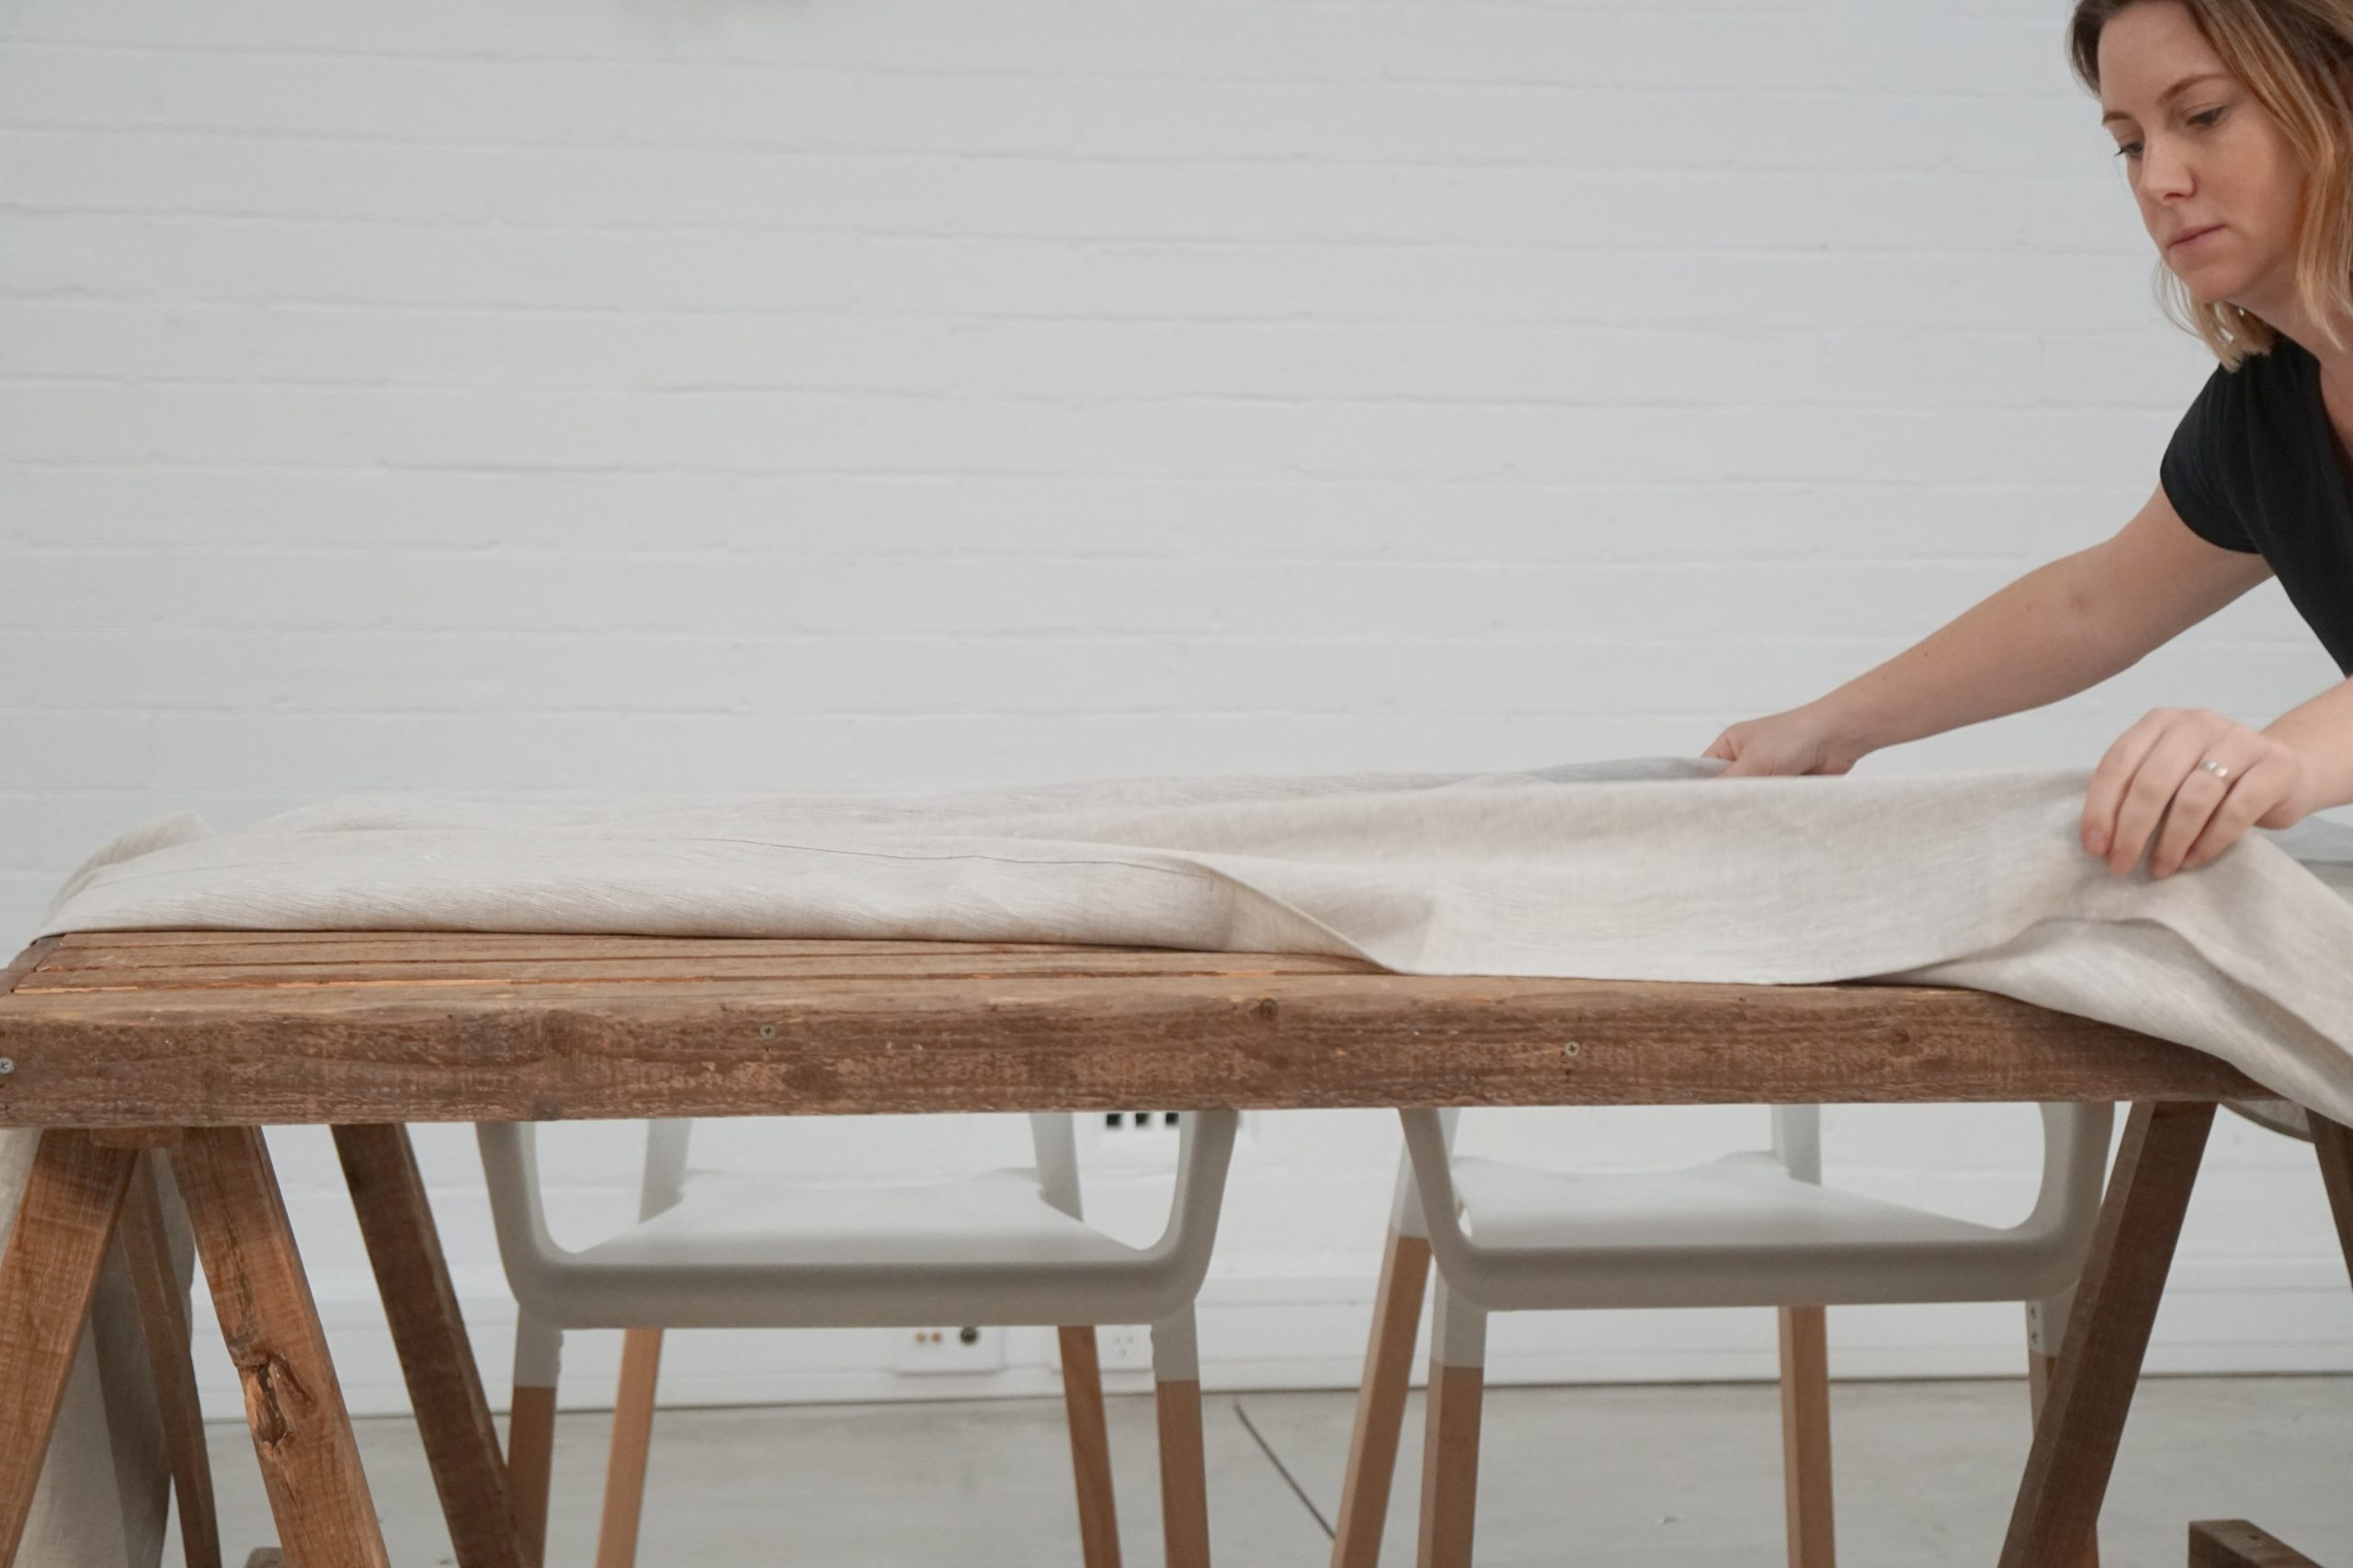 stylist laying out linen table cloth on table